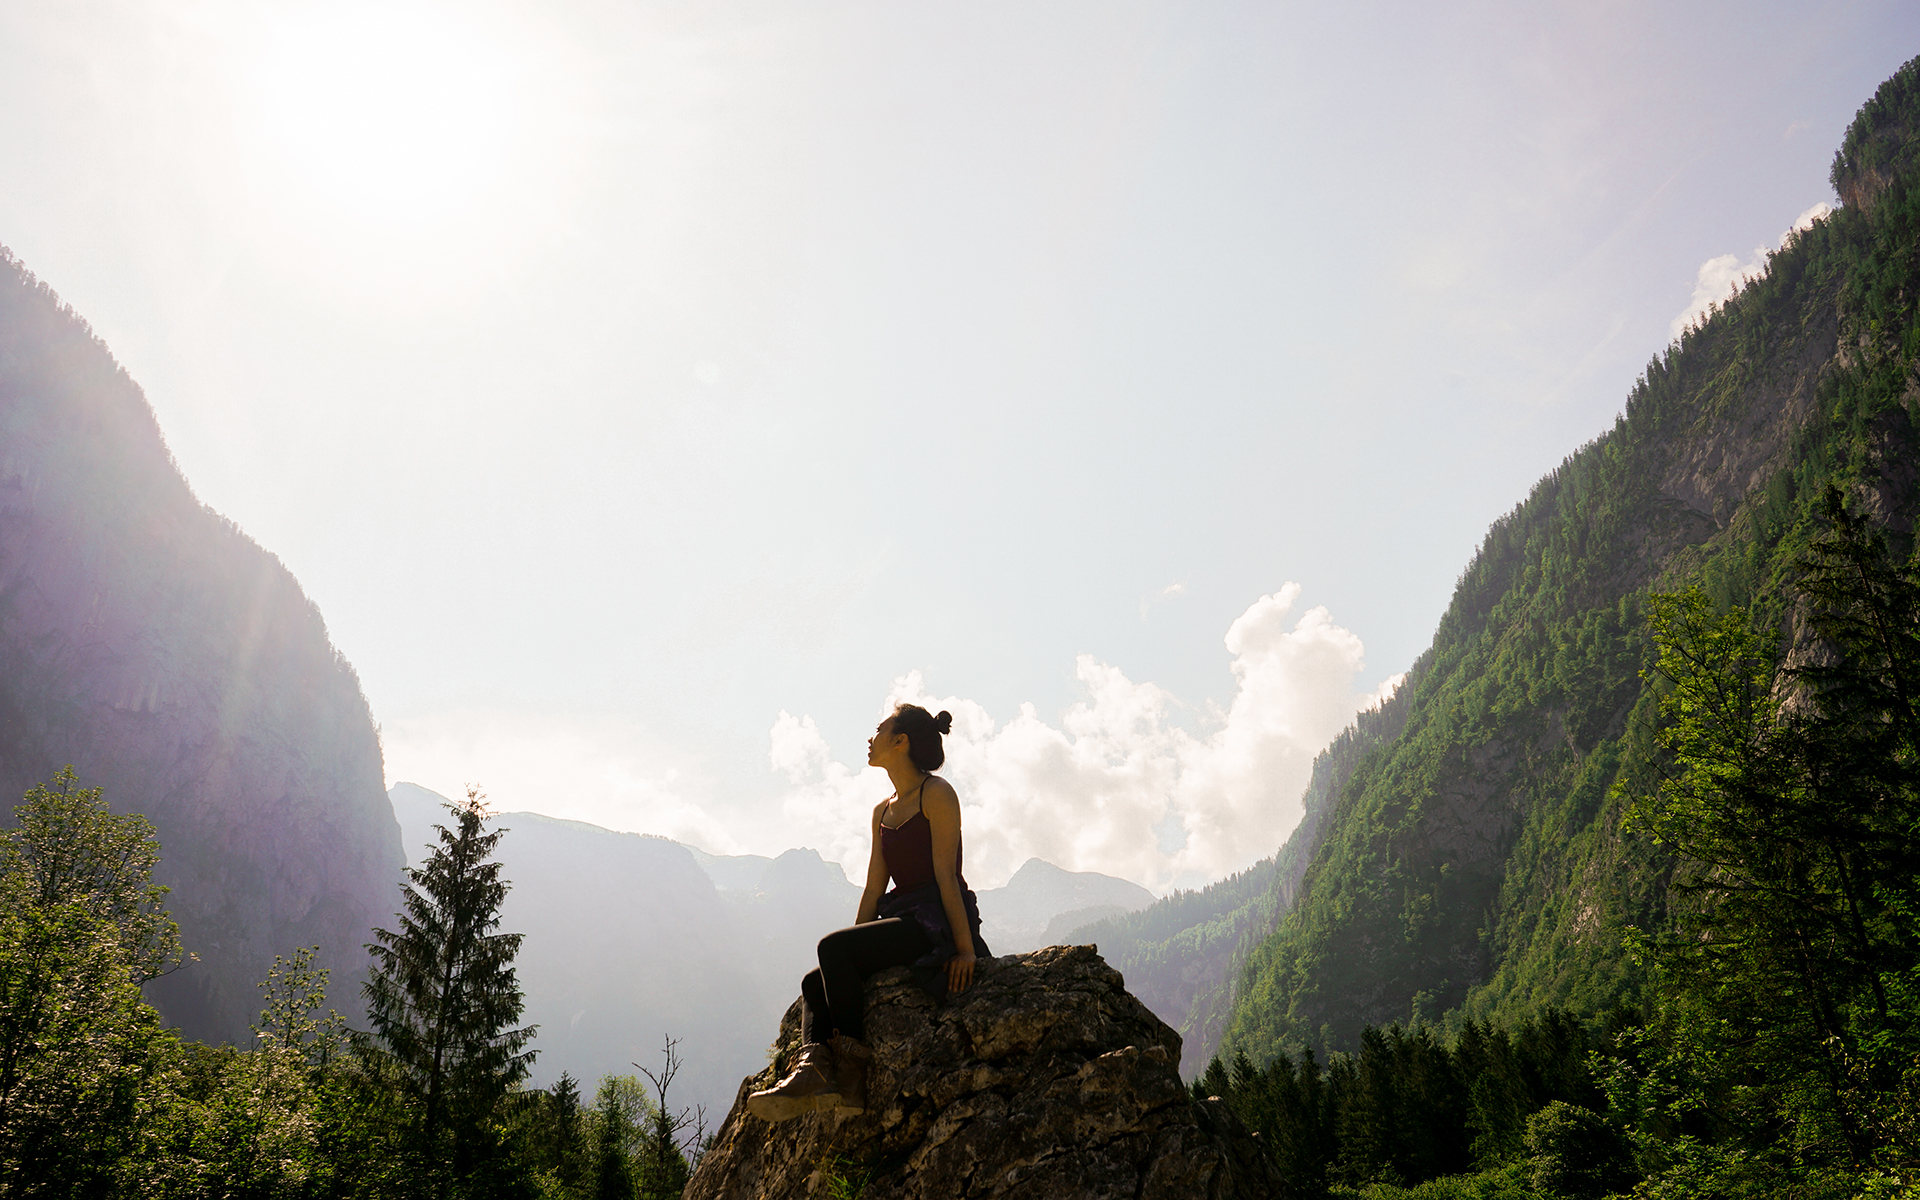 Health benefits of being mindful outdoors